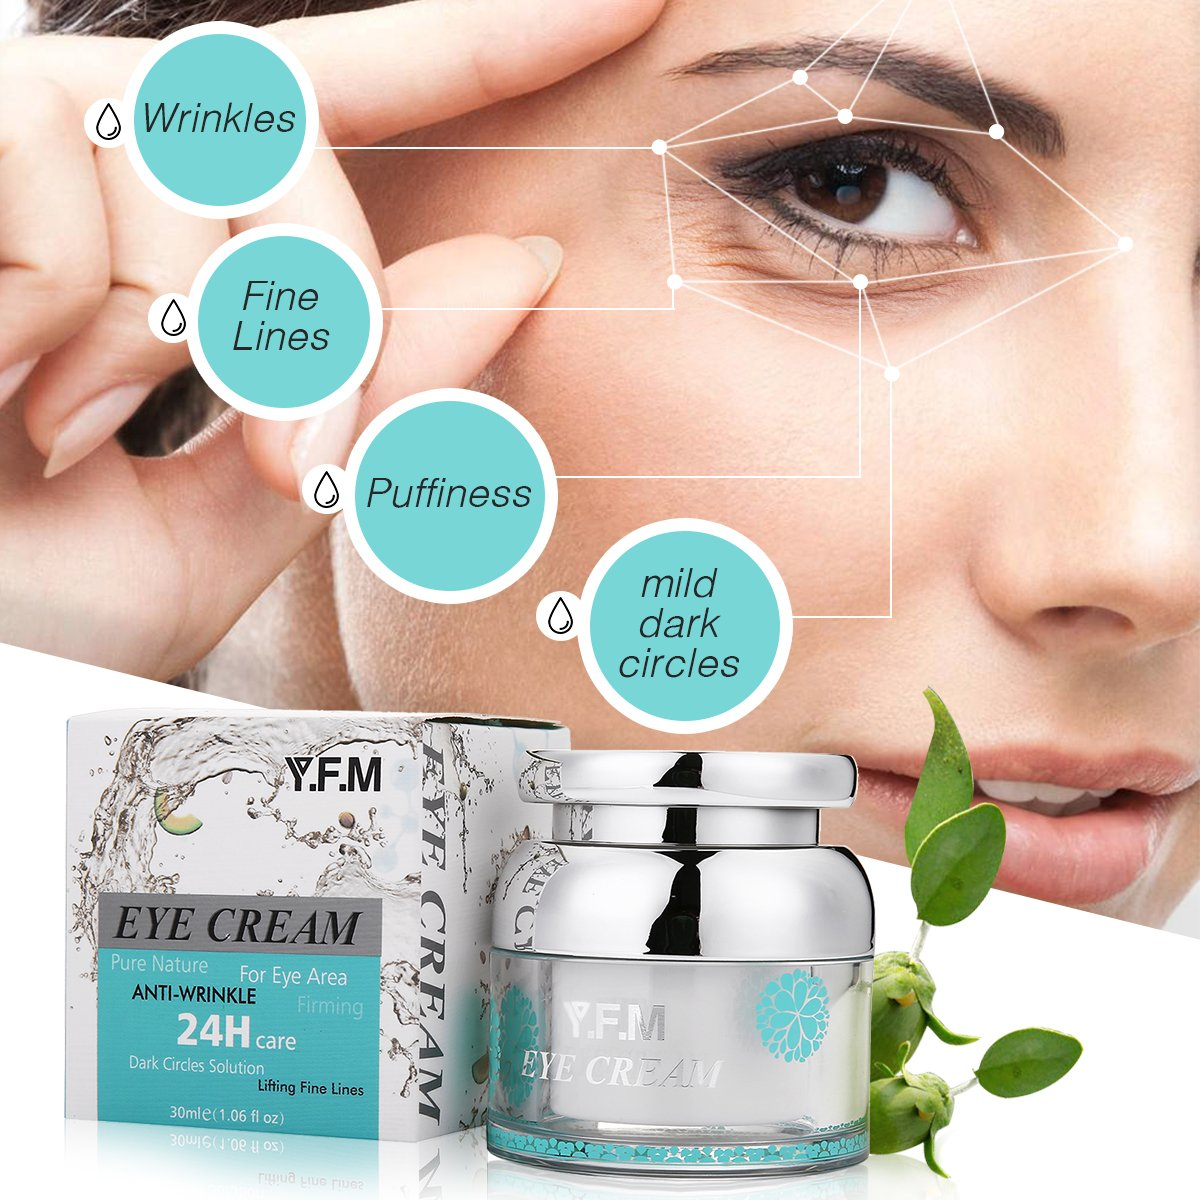 Eye Cream for Women & Men Y.F.M - Dark Circles Puffiness Wrinkles and Bags Anti-Oxidation The Most Effective For Every Eye Concern Hydrolyzed Collagen